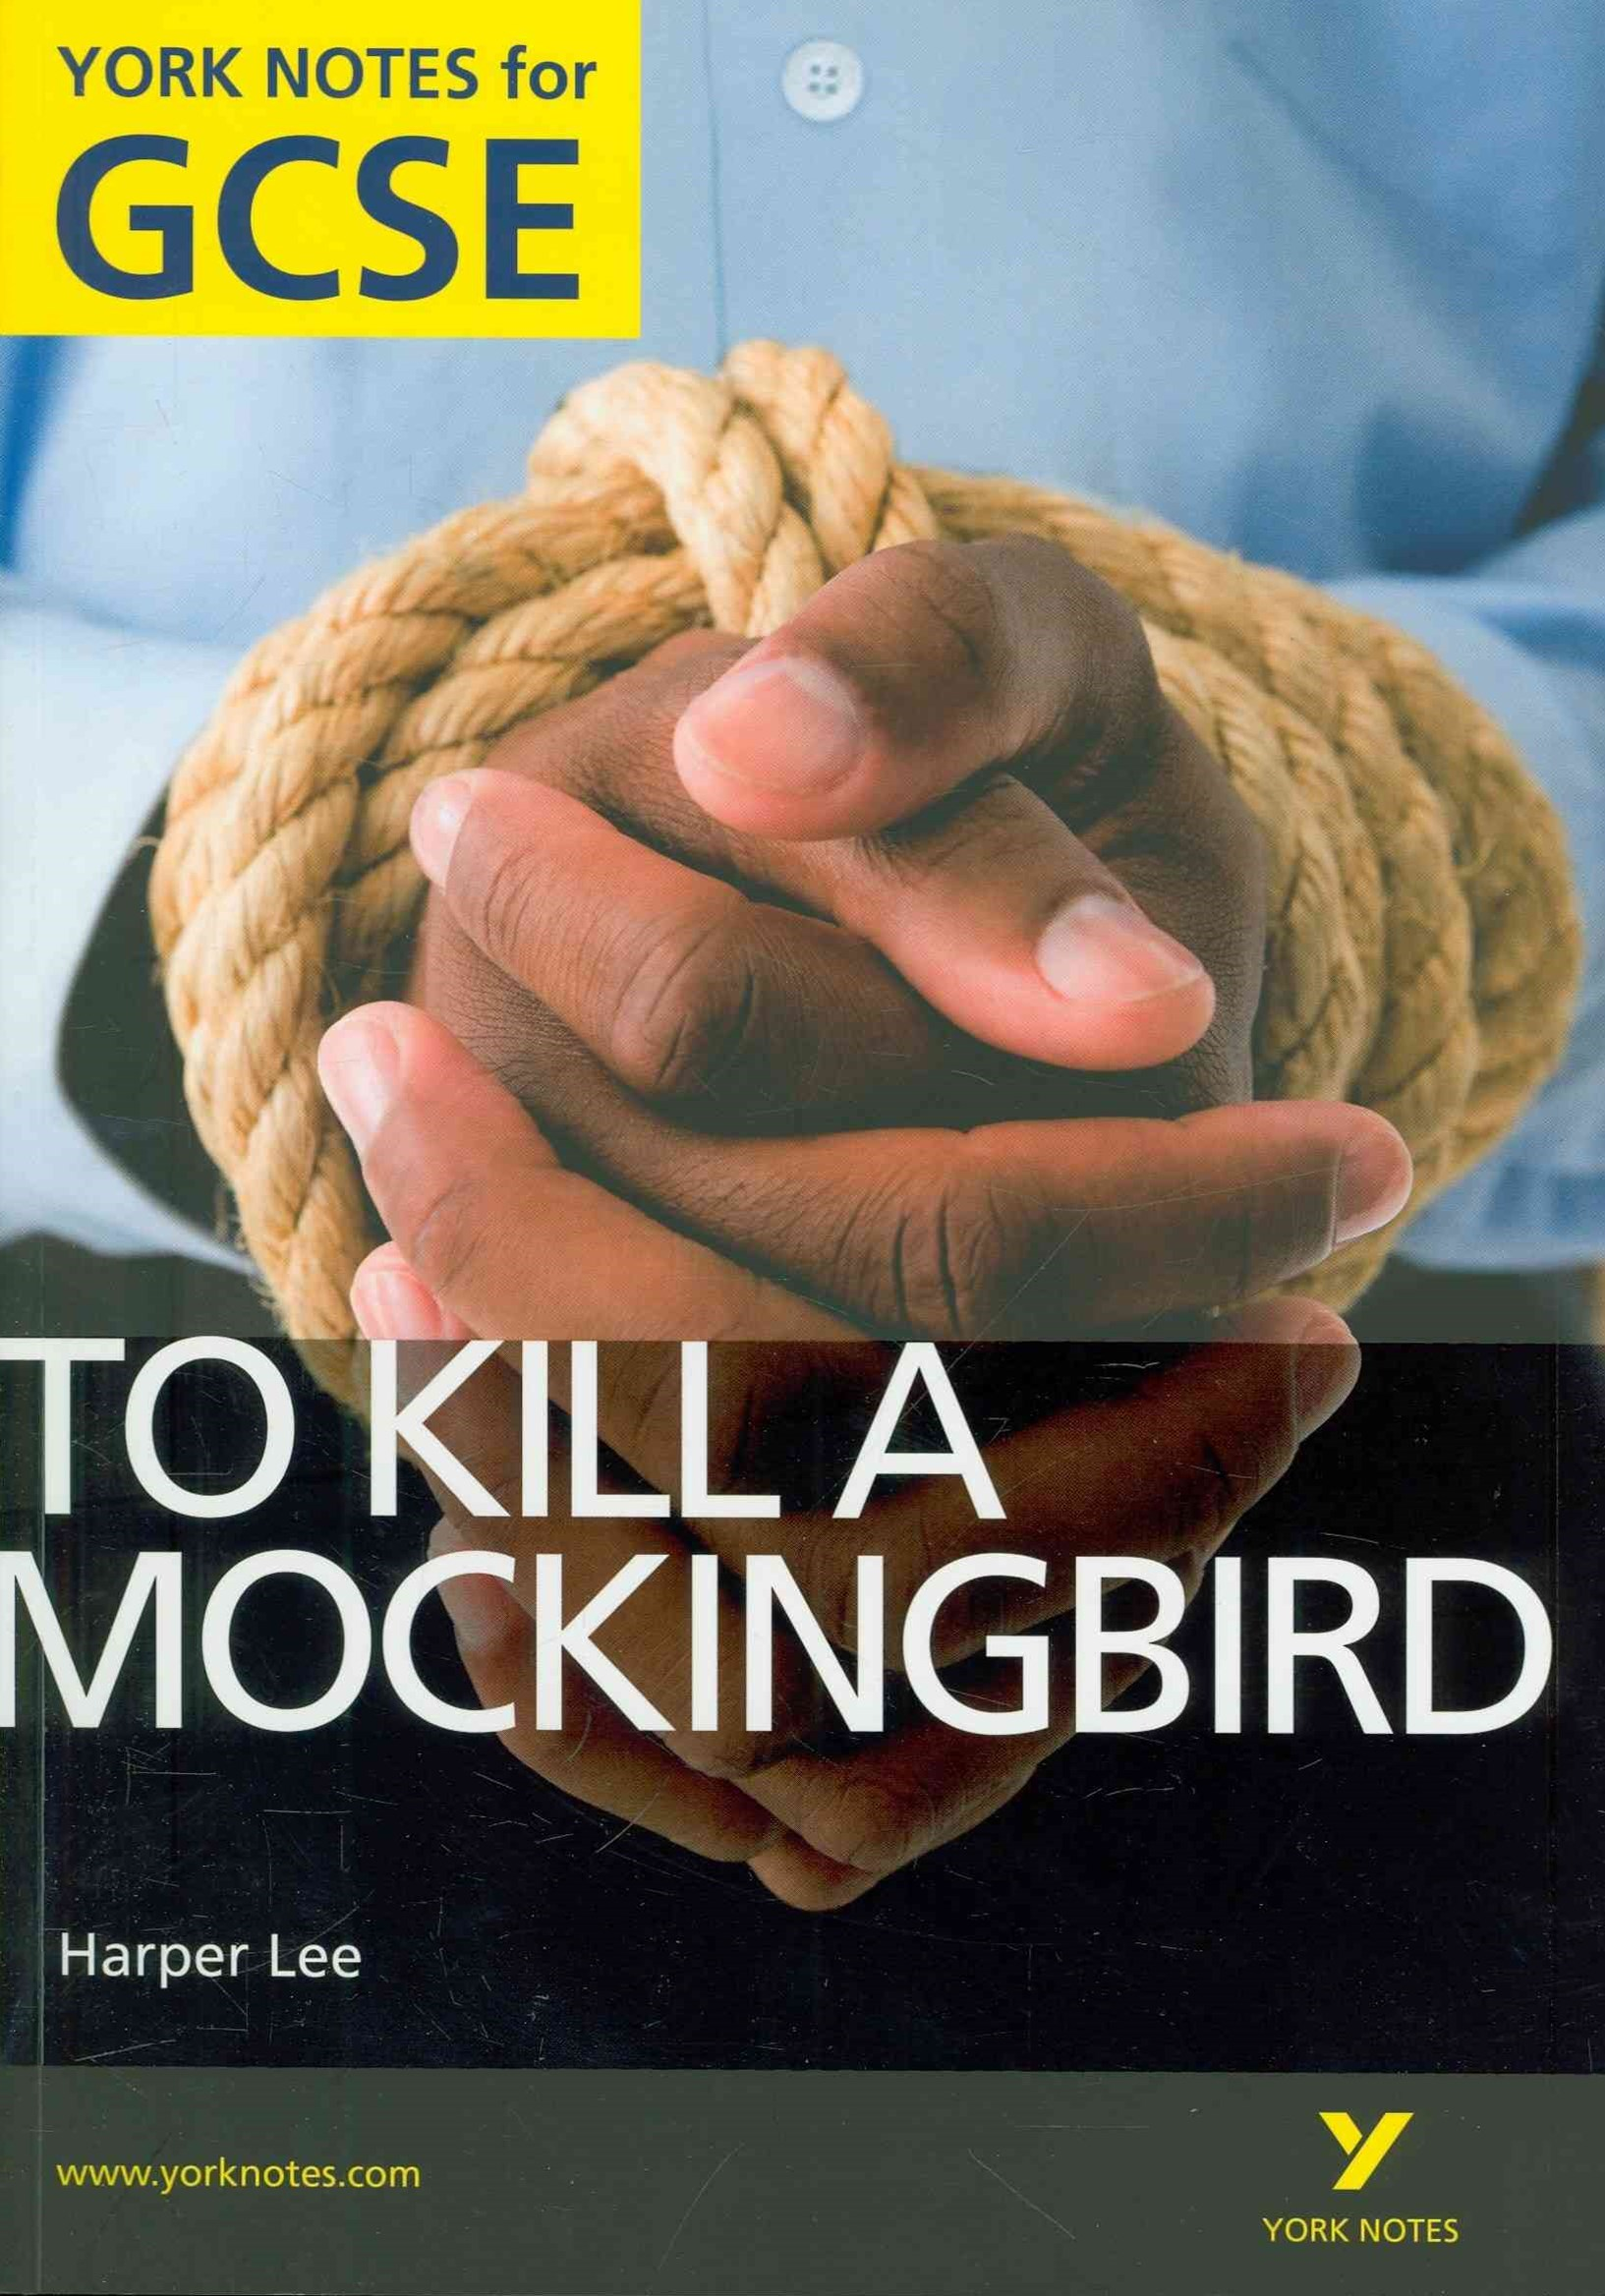 To Kill a Mockinbird